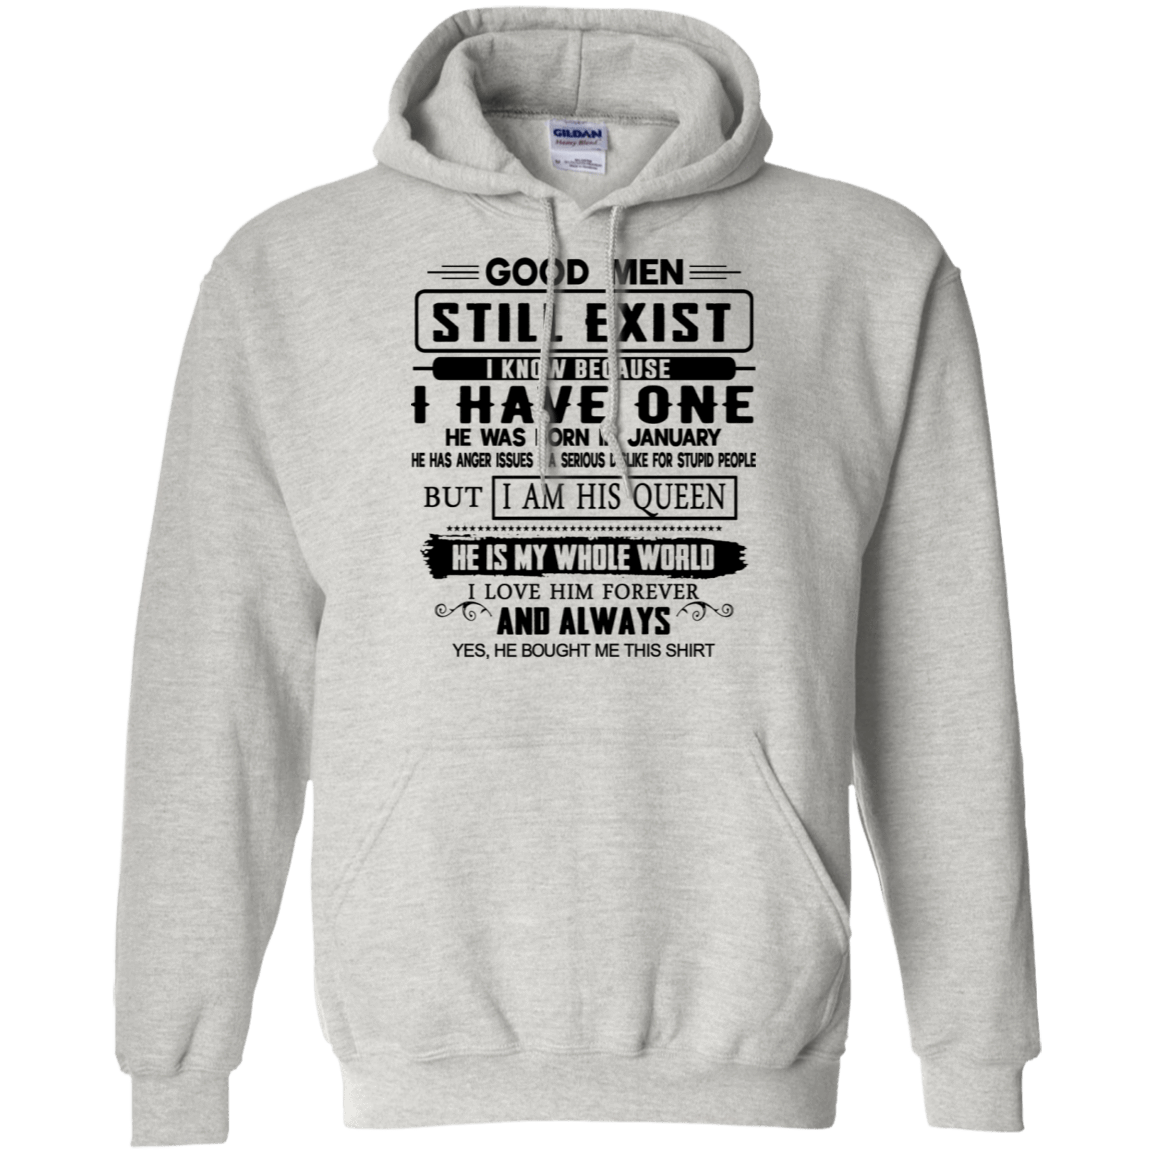 Good Men Still Exist I Have One He Was Born In January T-Shirts & Hoodies 541-4748-76399019-23071 - Tee Ript